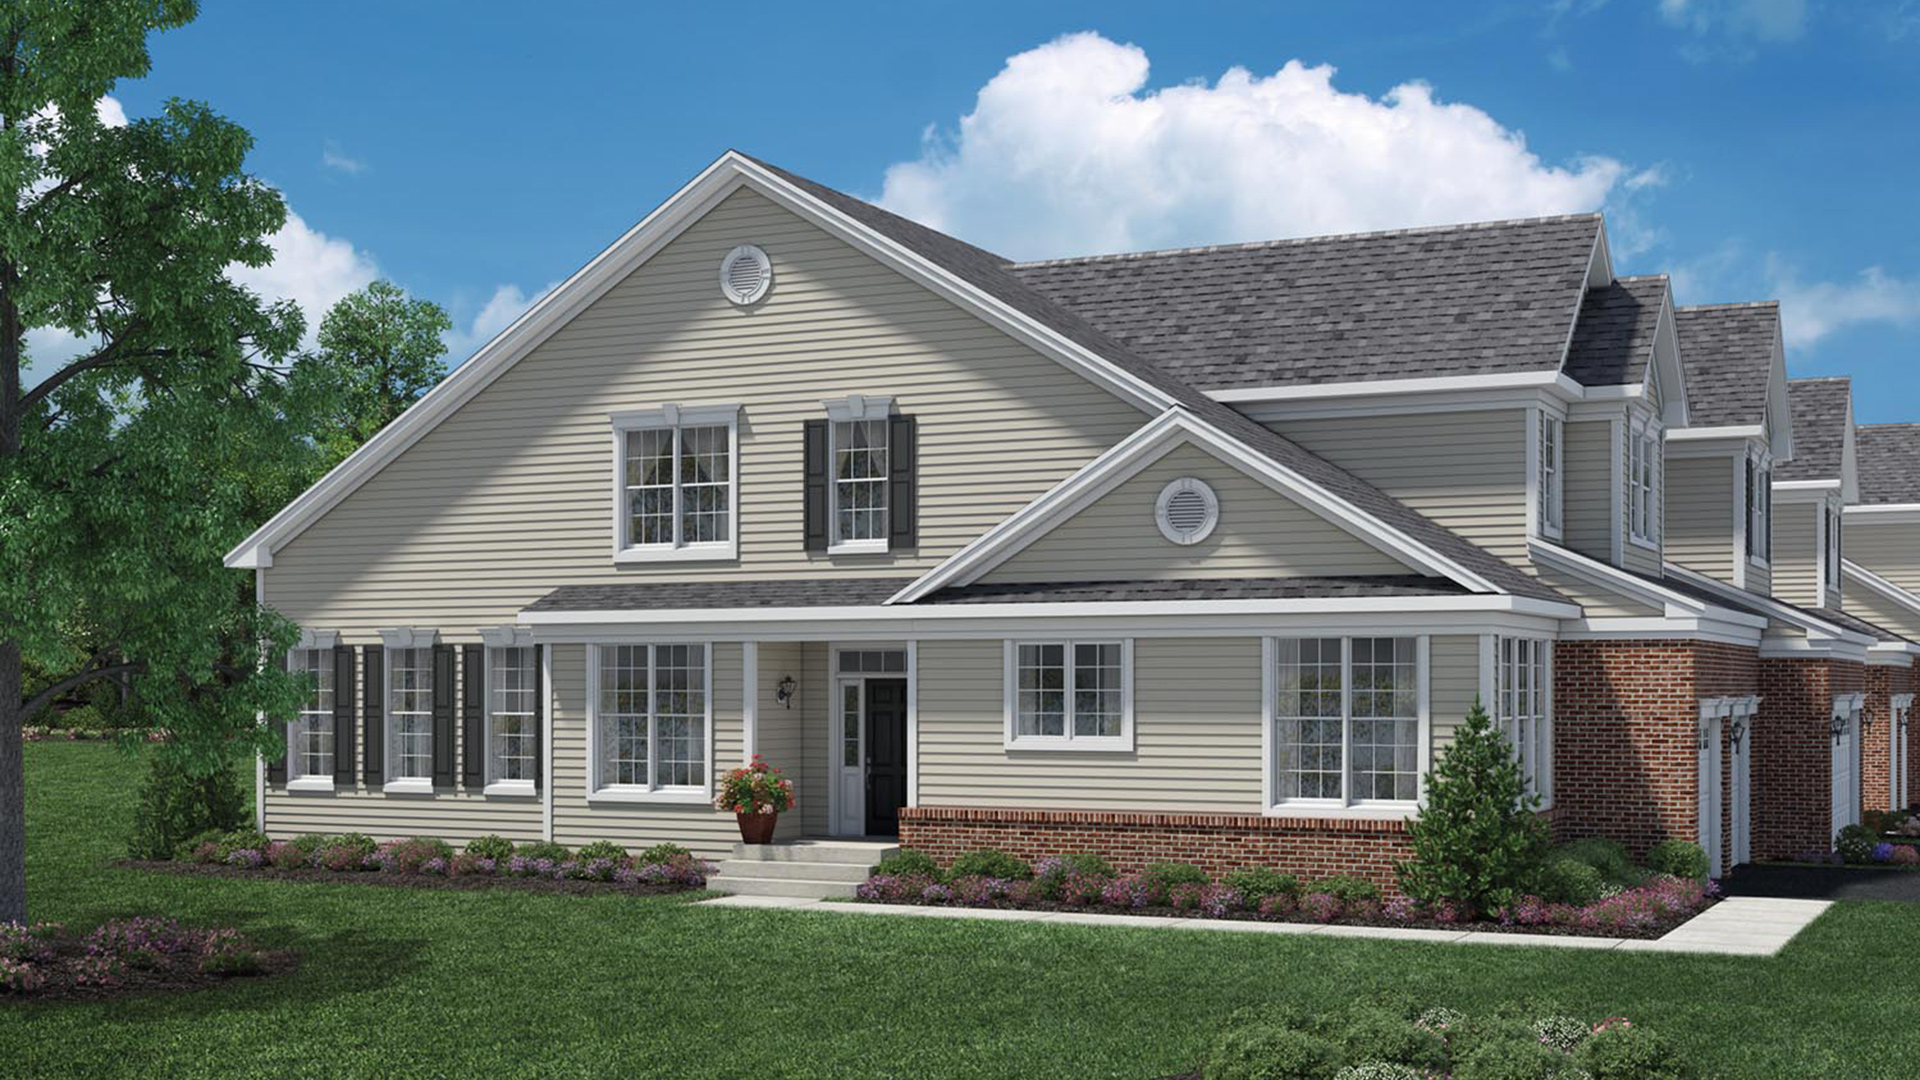 Bowes creek country club the townhome collection the for The country home collection